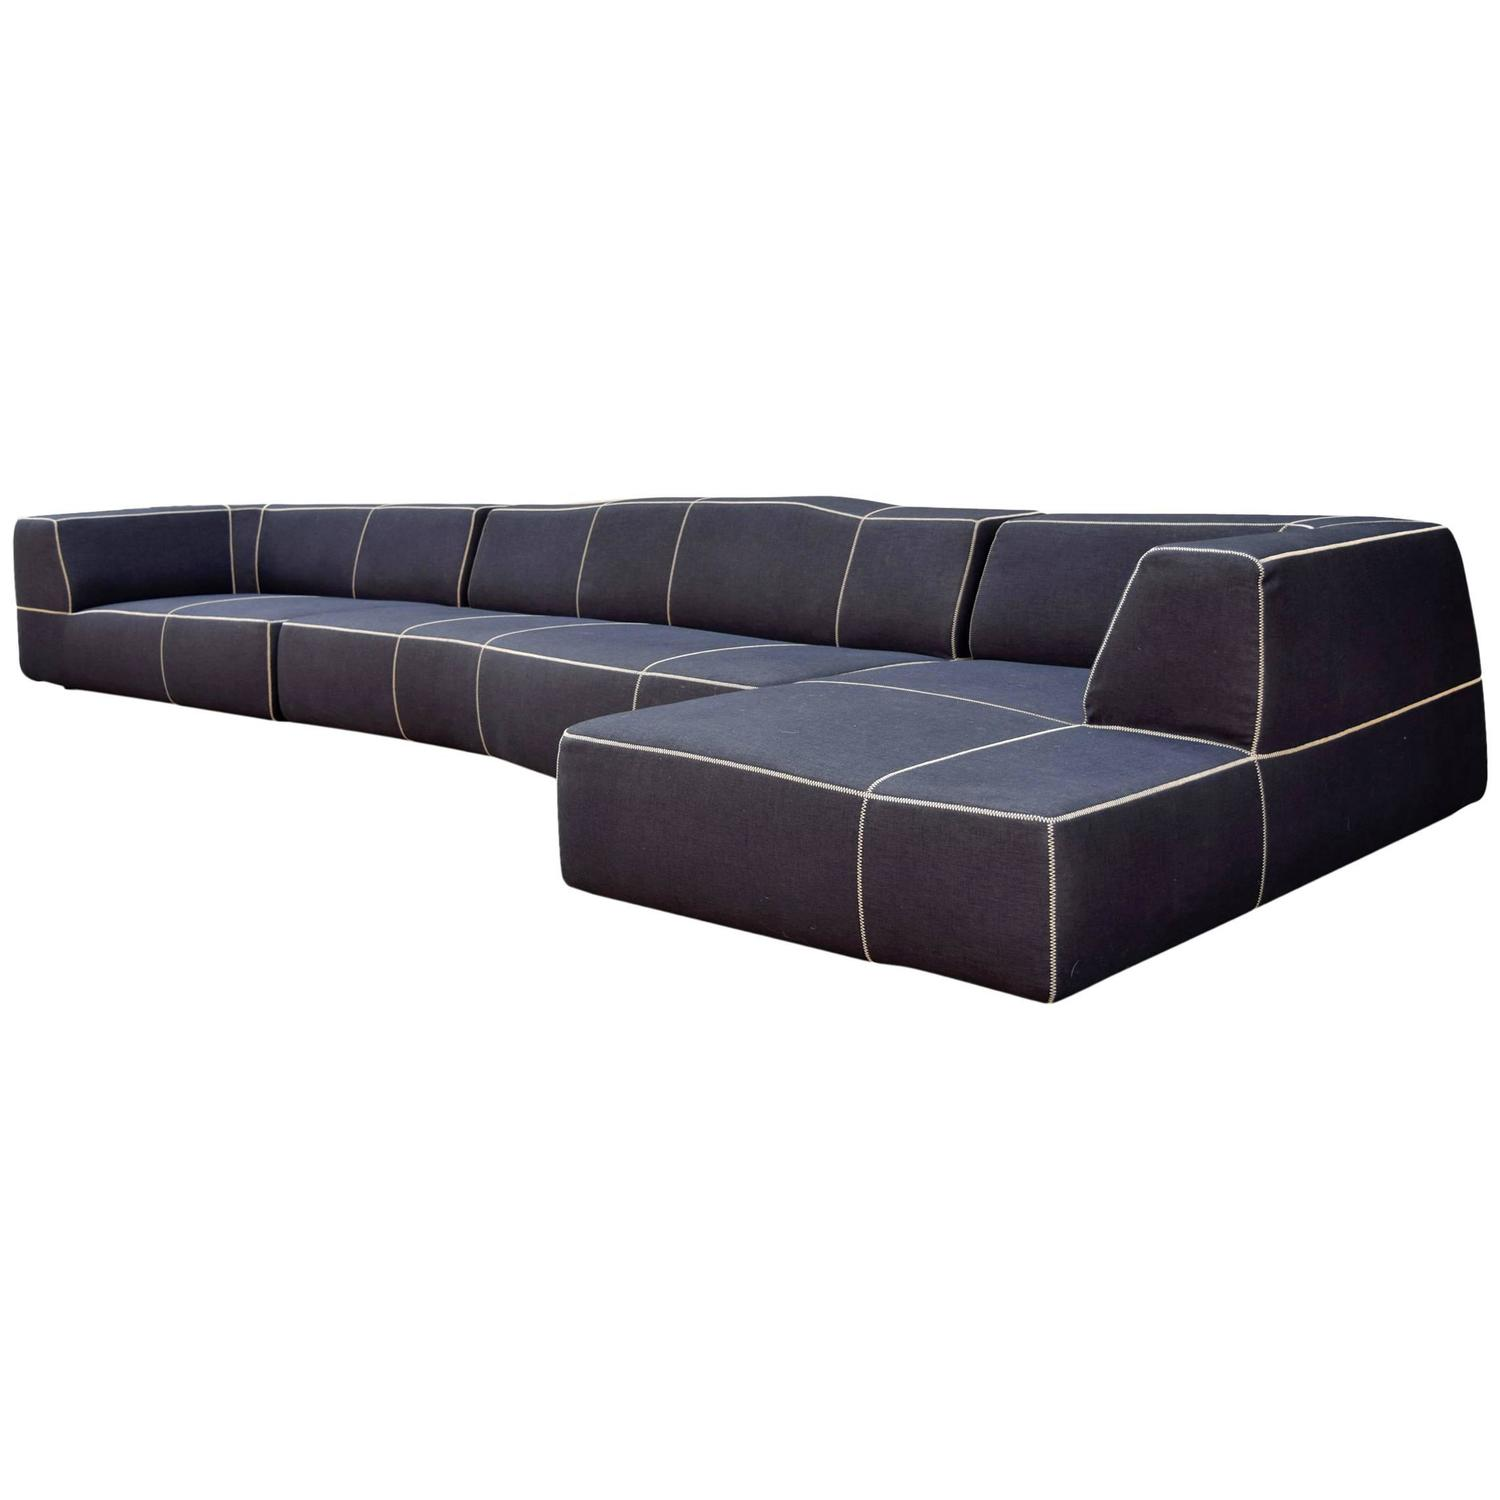 b b italia bend sofa by patricia urquiola at 1stdibs. Black Bedroom Furniture Sets. Home Design Ideas